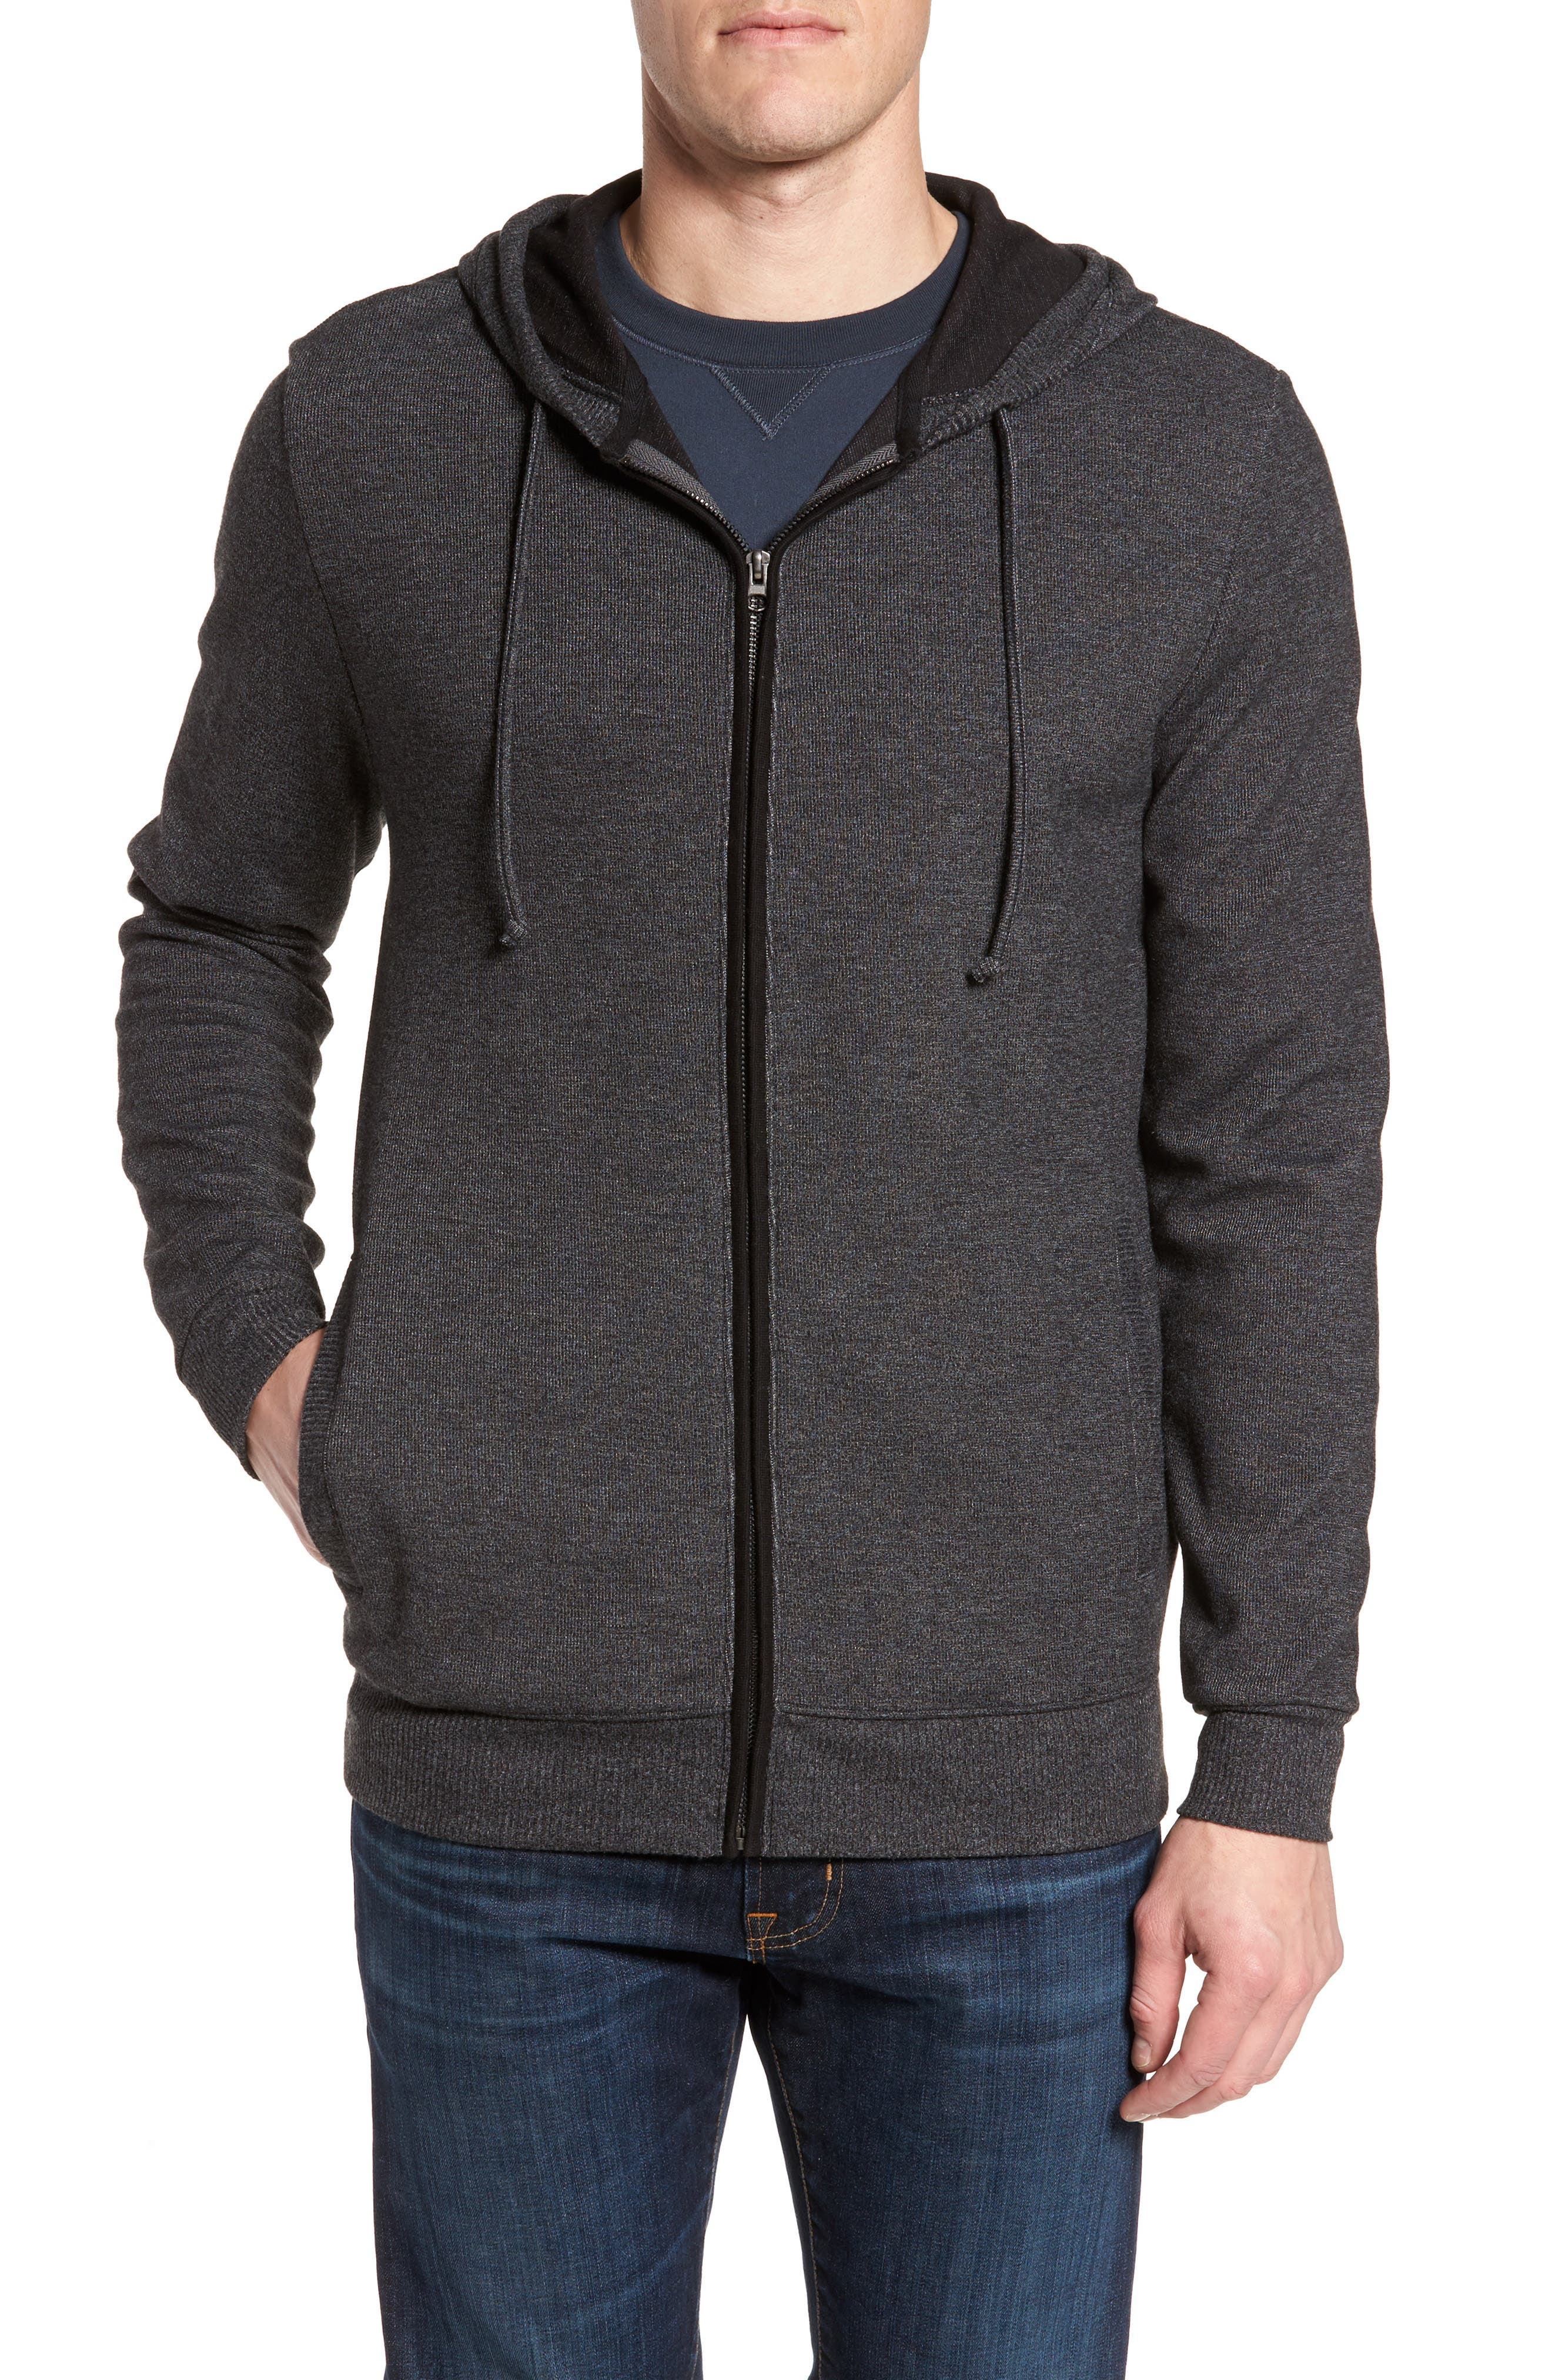 Snare Zip Front Hooded Cardigan,                             Main thumbnail 1, color,                             Black